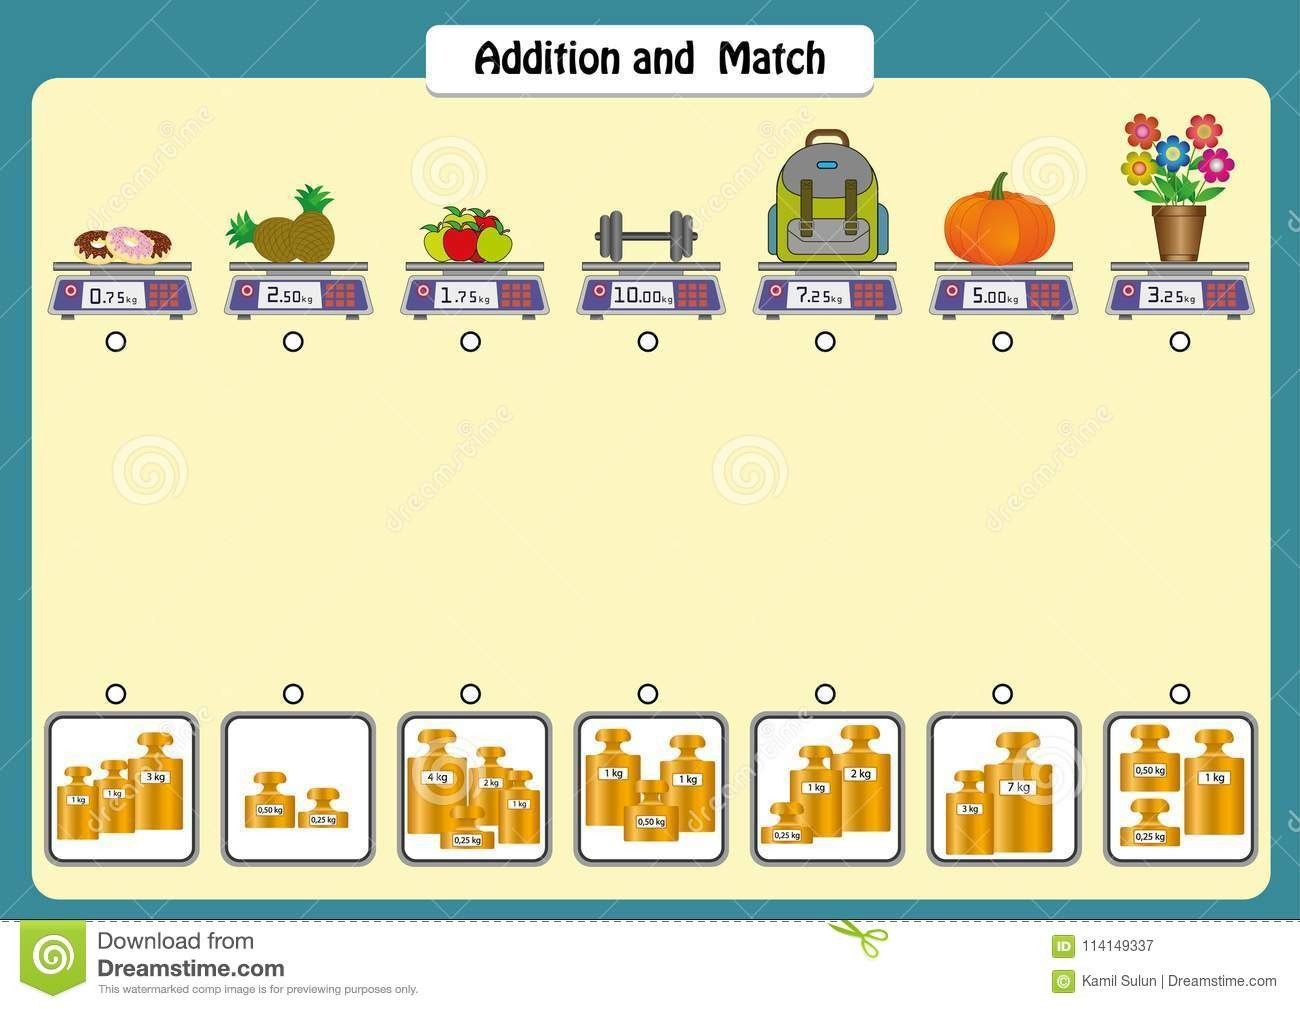 Weight Worksheets for Kindergarten Addition and Match the Weights Objects Math Worksheets